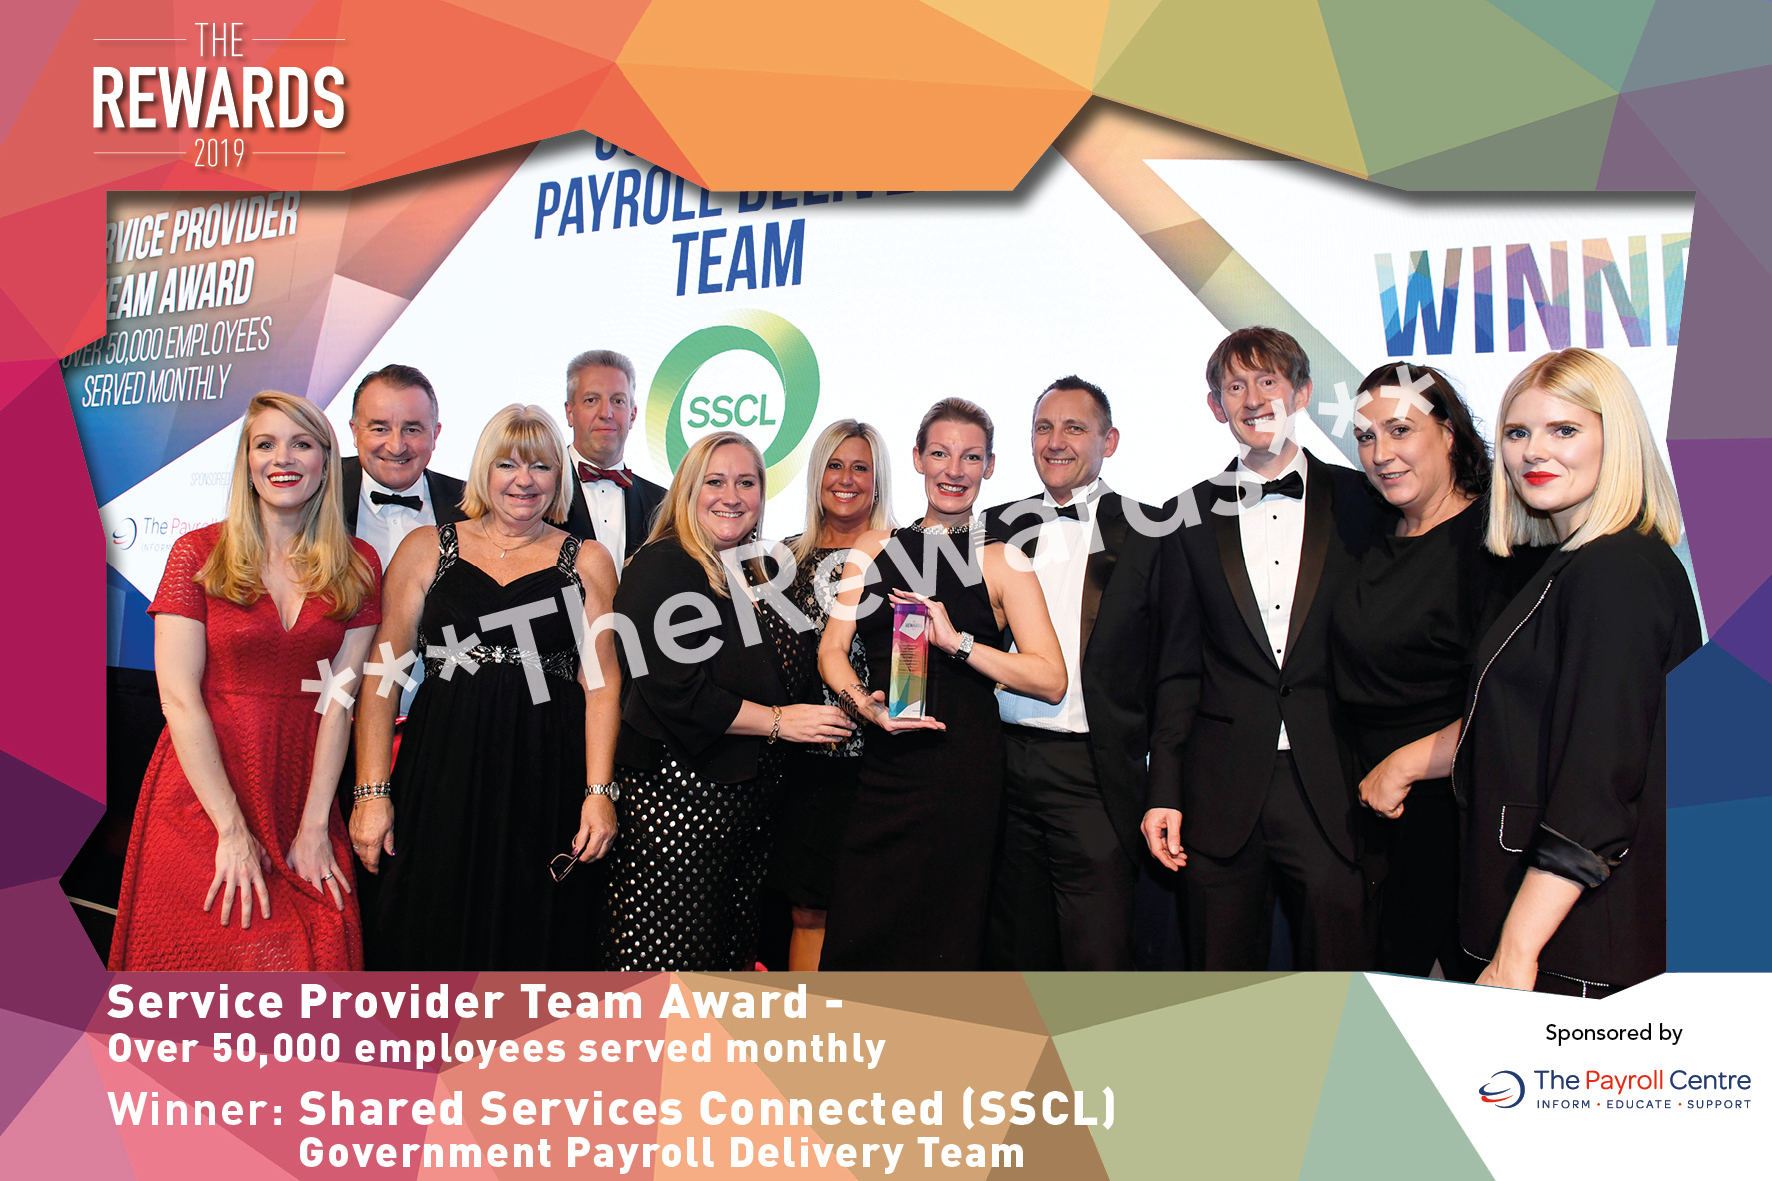 Service Provider Team Award - Over 50,000 employees served monthly